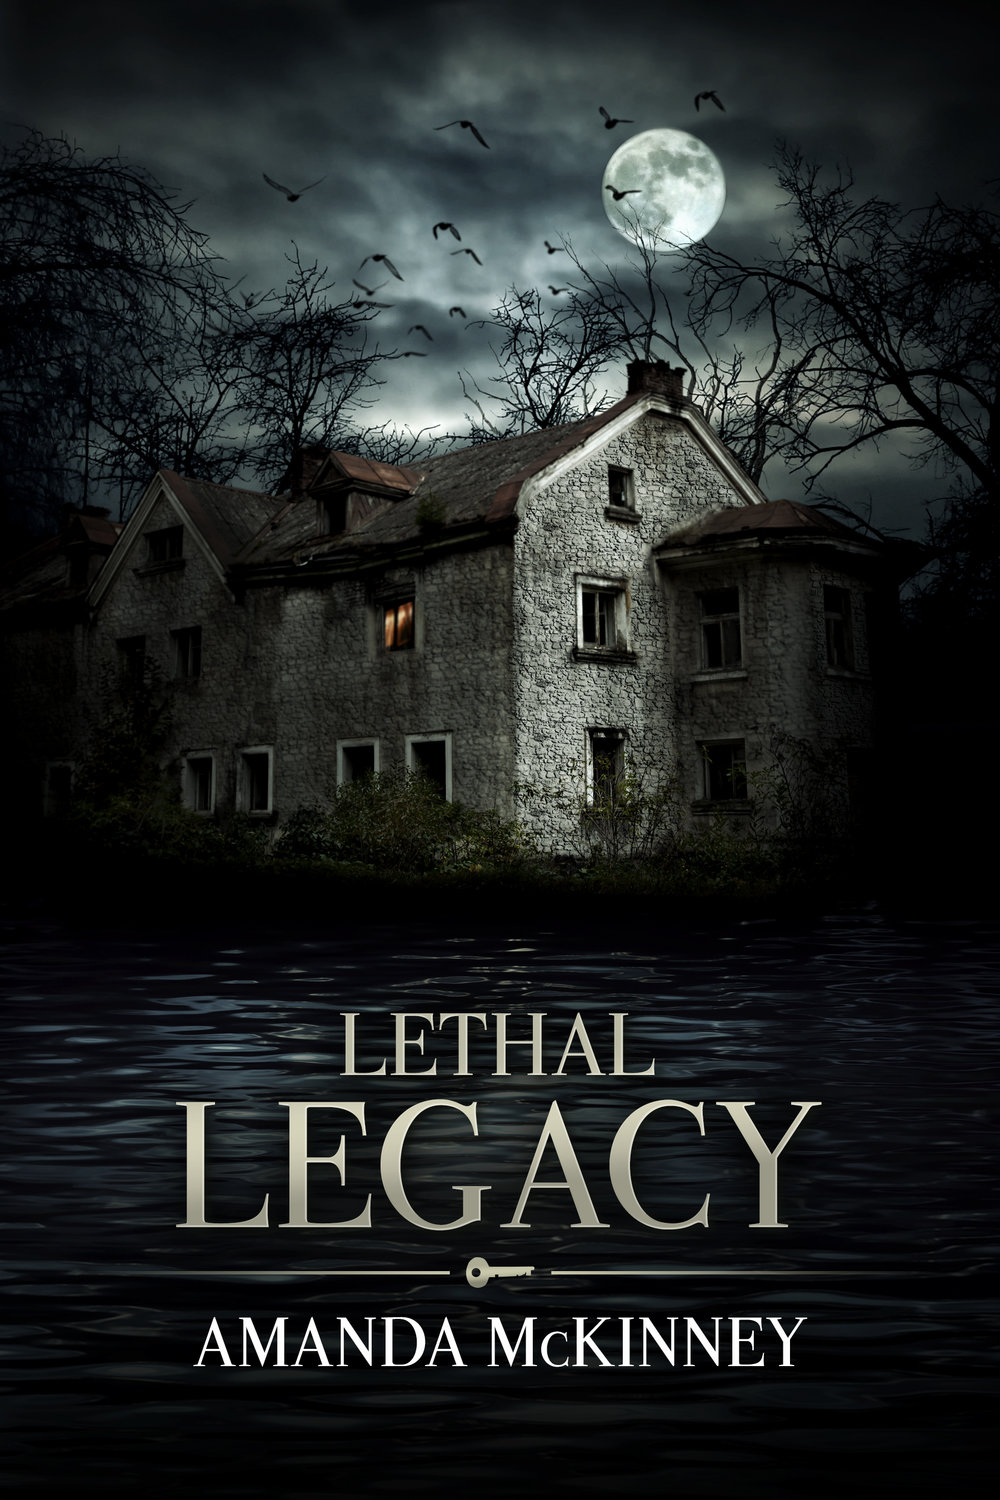 LethalLegacy_Cover.jpg